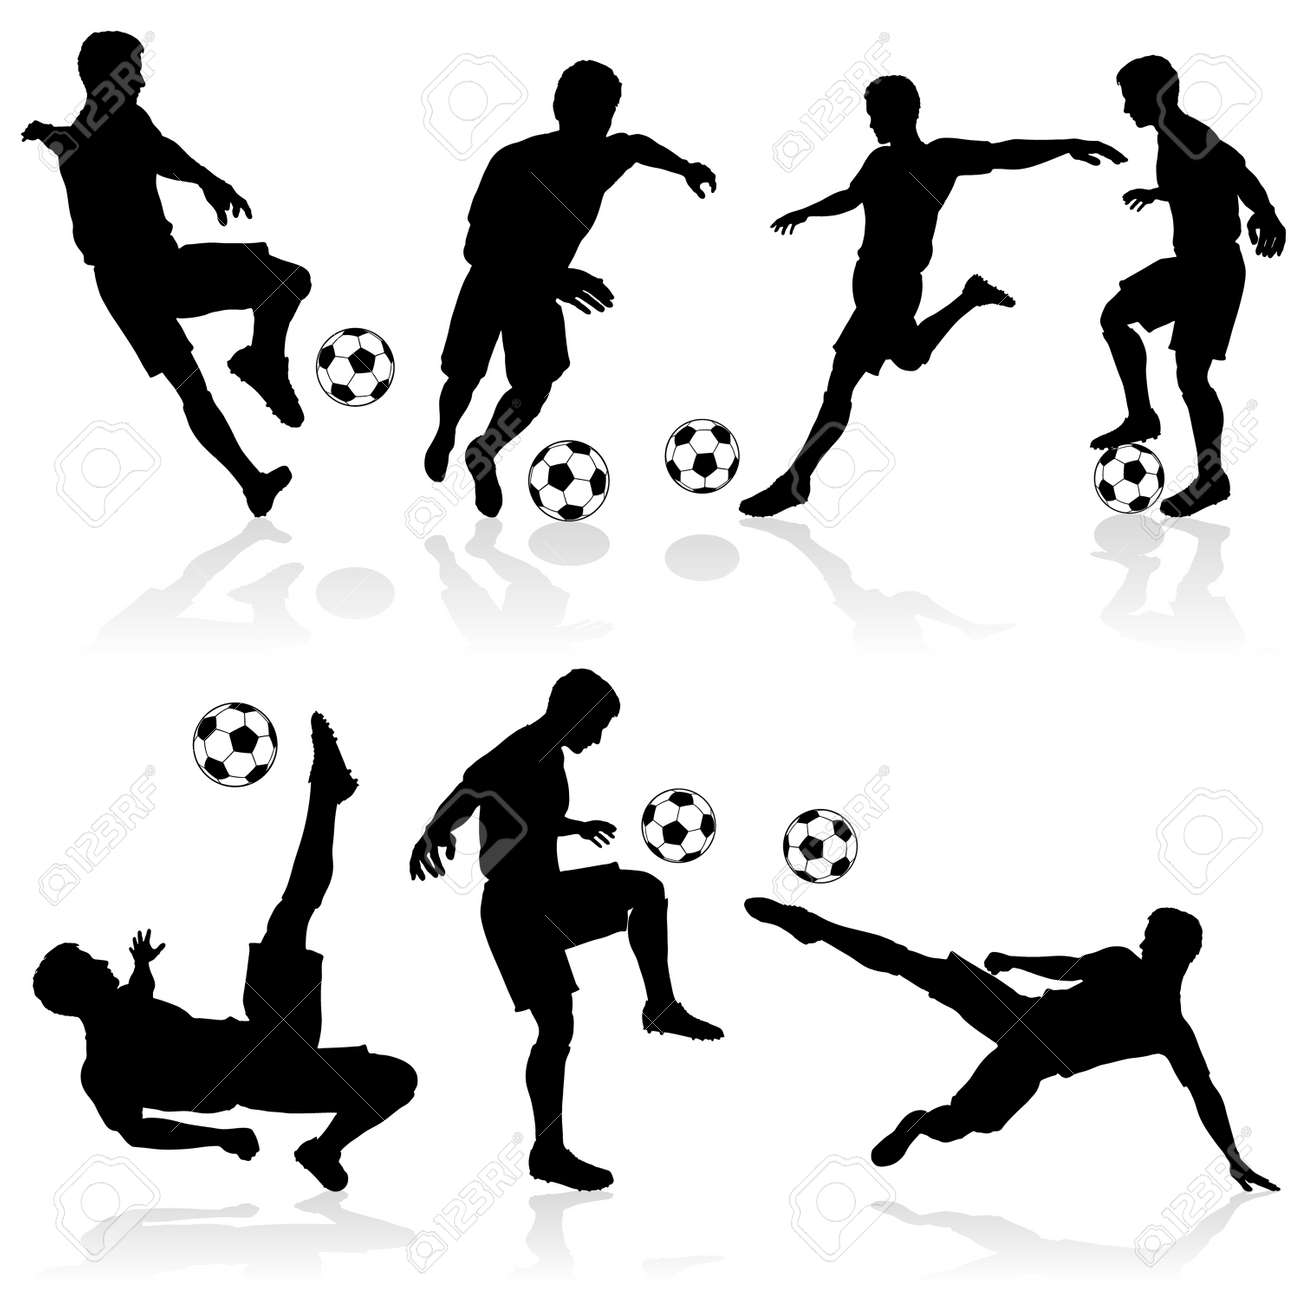 Set of Silhouettes of Soccer Players in various Poses with the Ball - 12490199